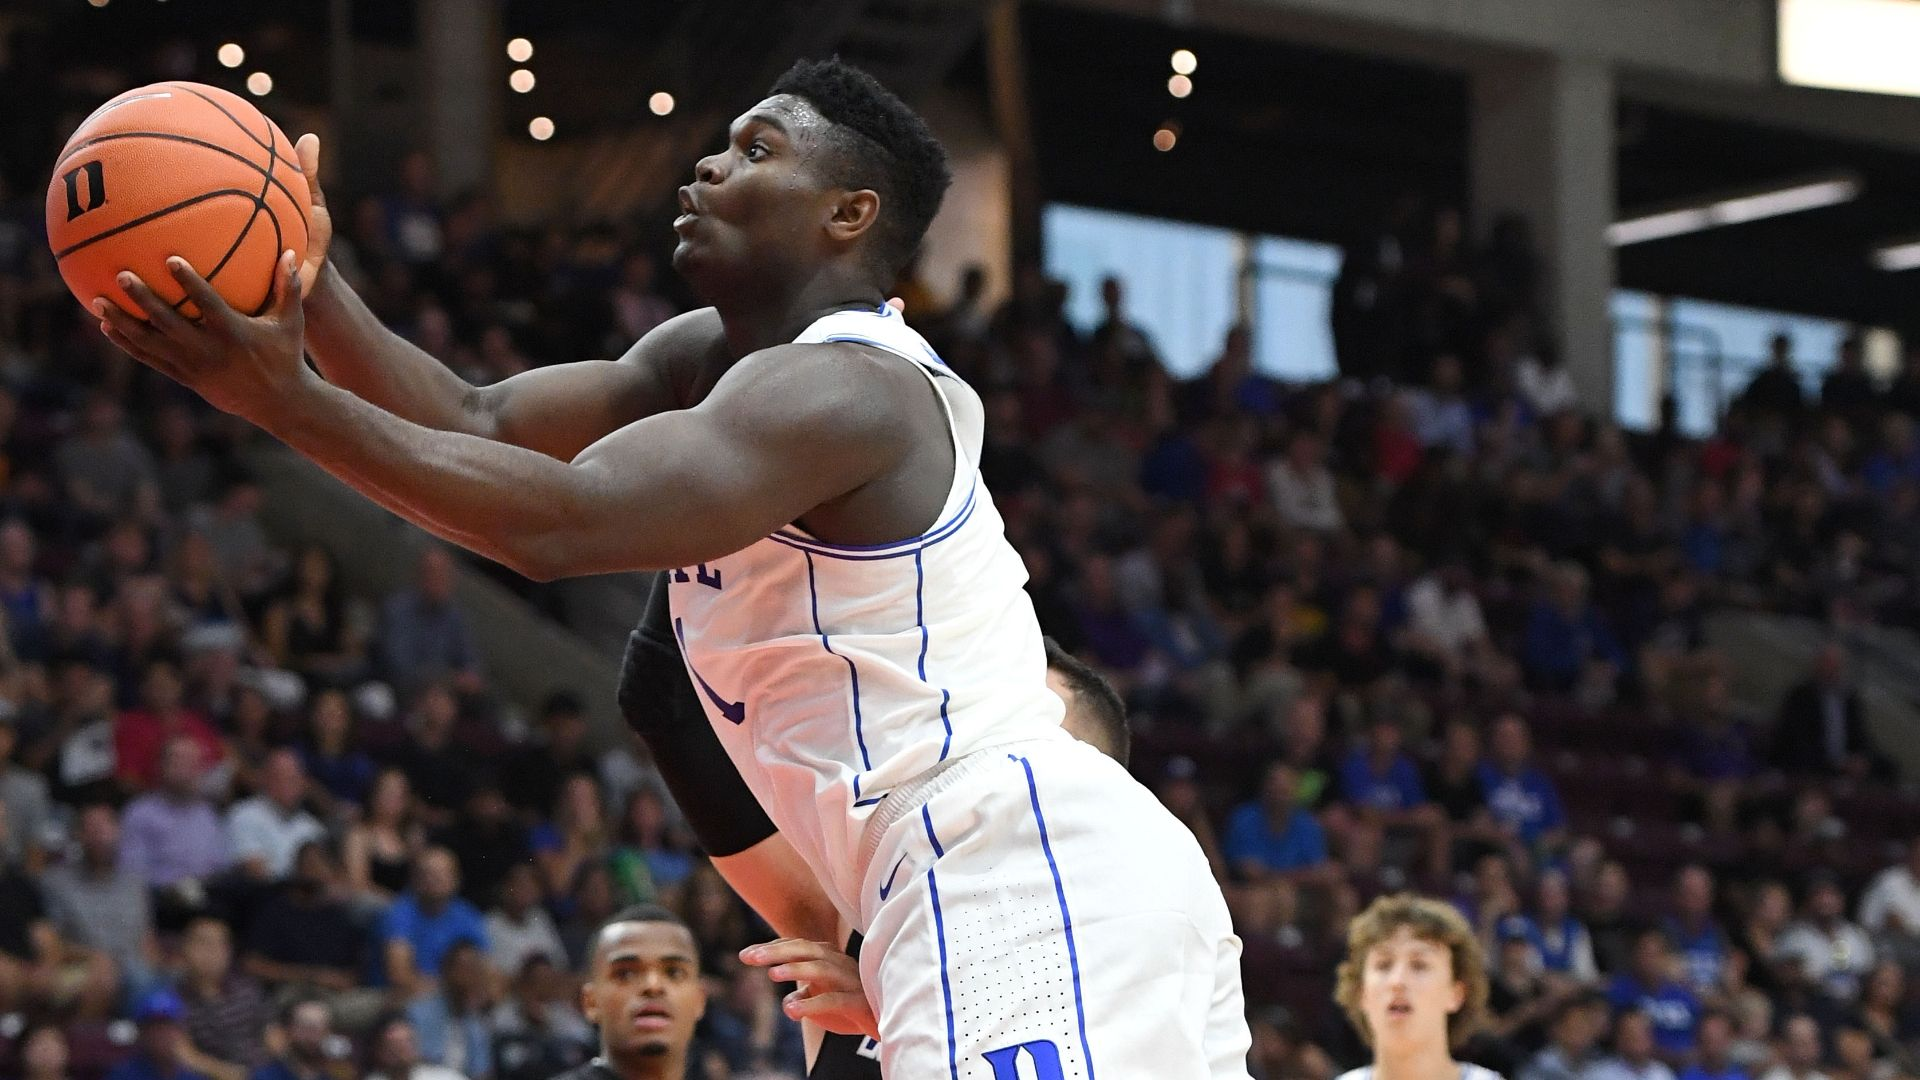 Zion impressive with 29 points in Duke debut<br>